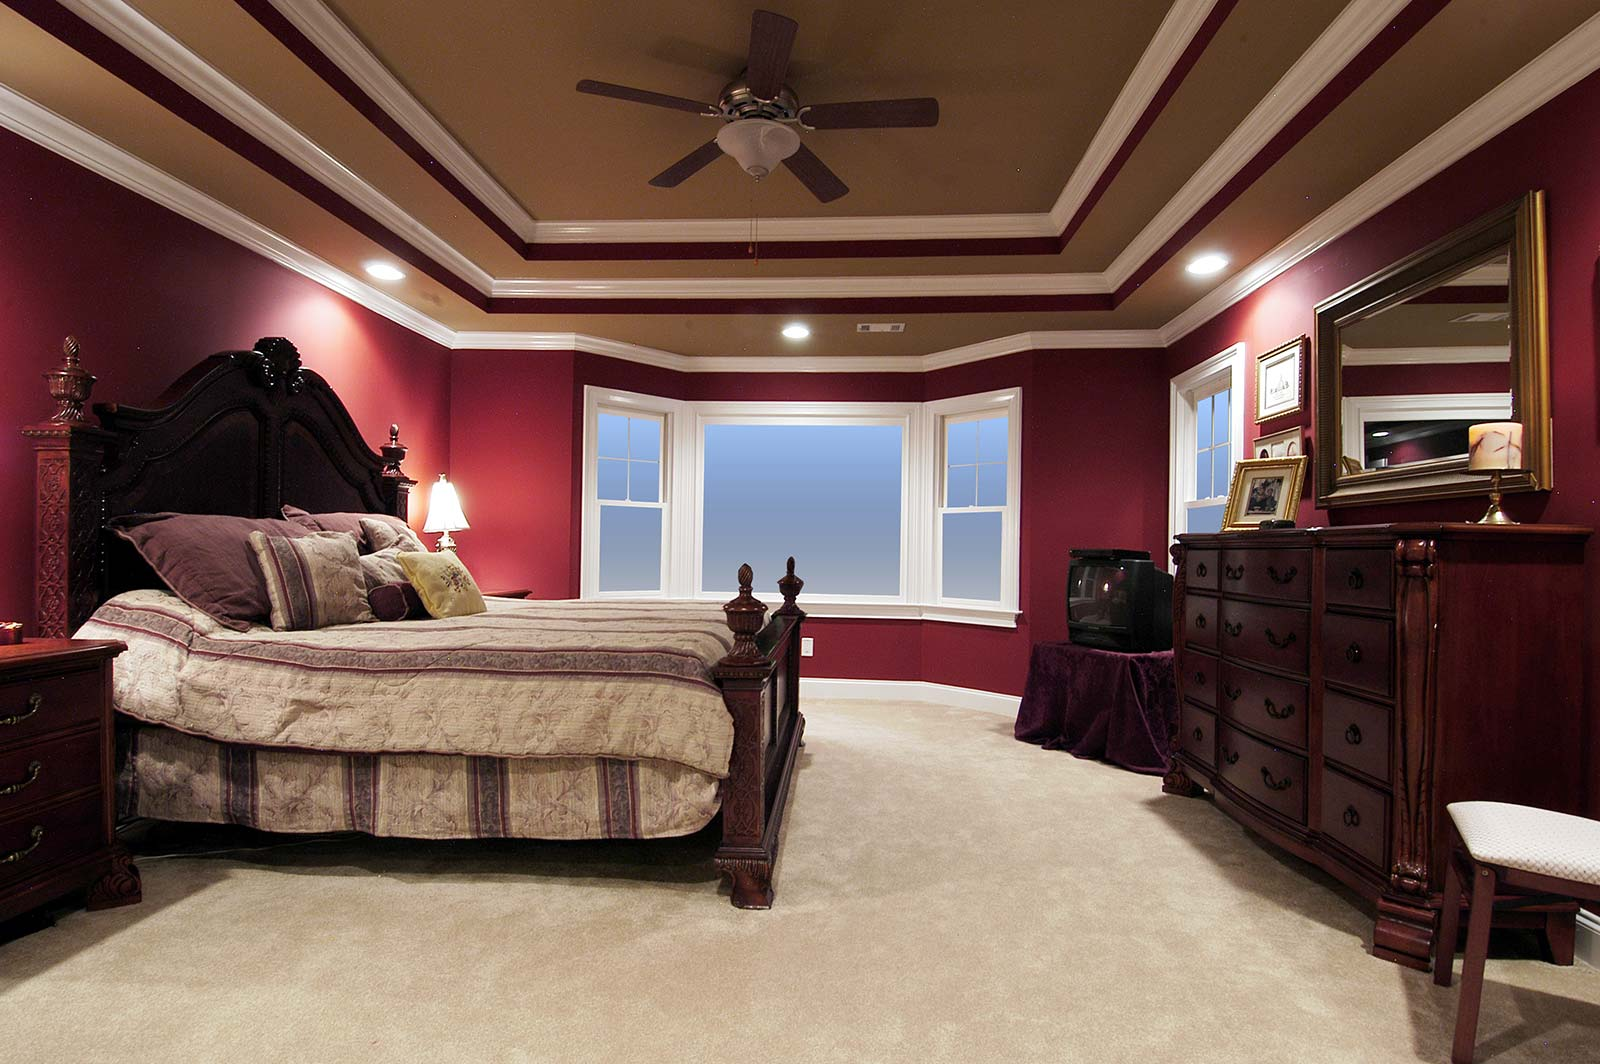 Dramatic double-tray ceiling in bedroom